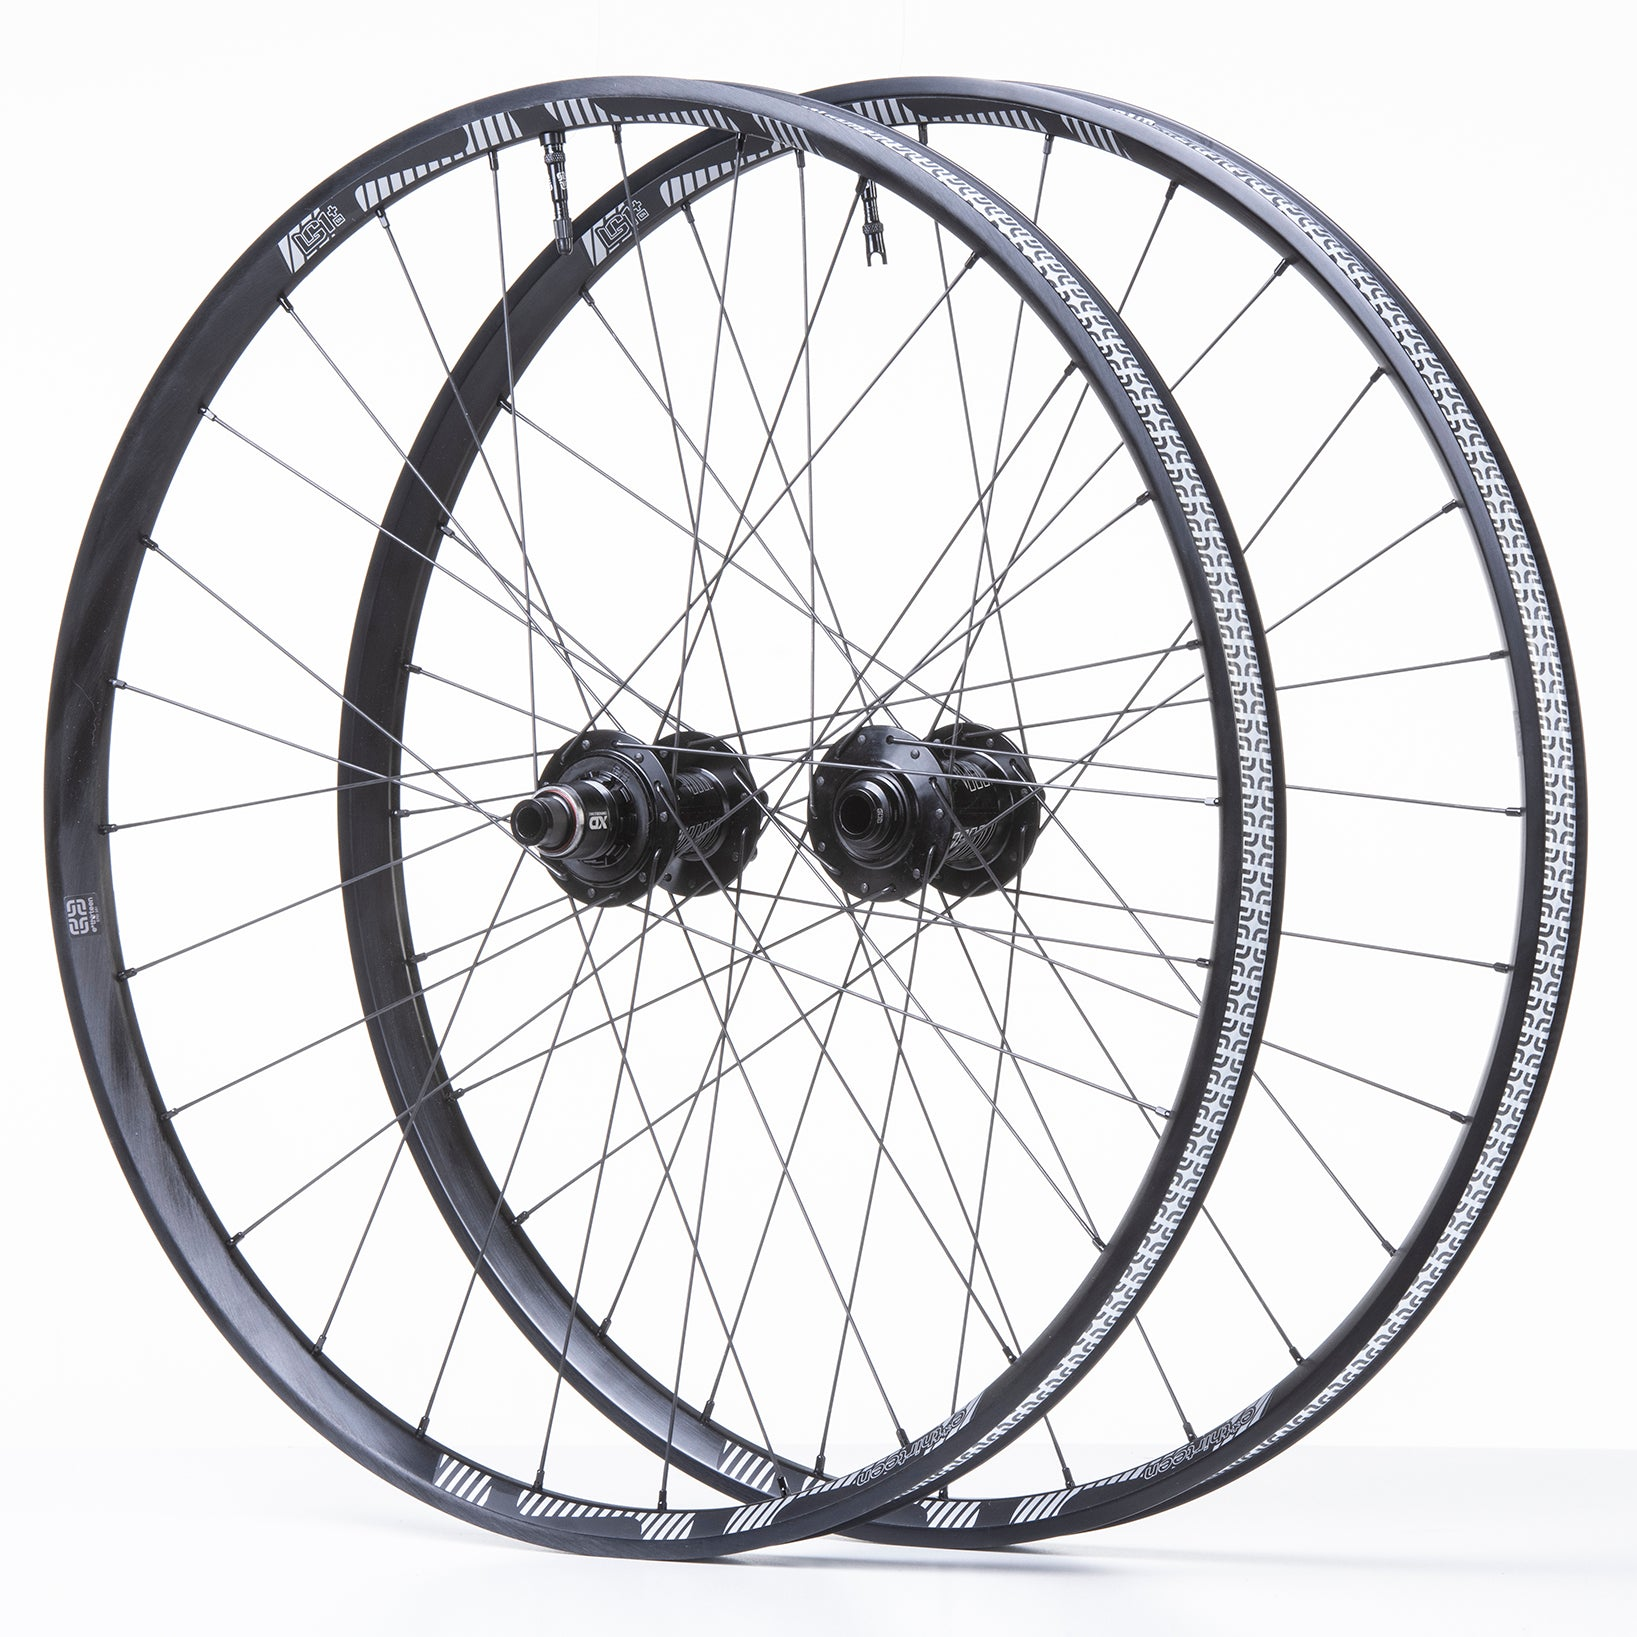 LG1 Plus Enduro Wheels